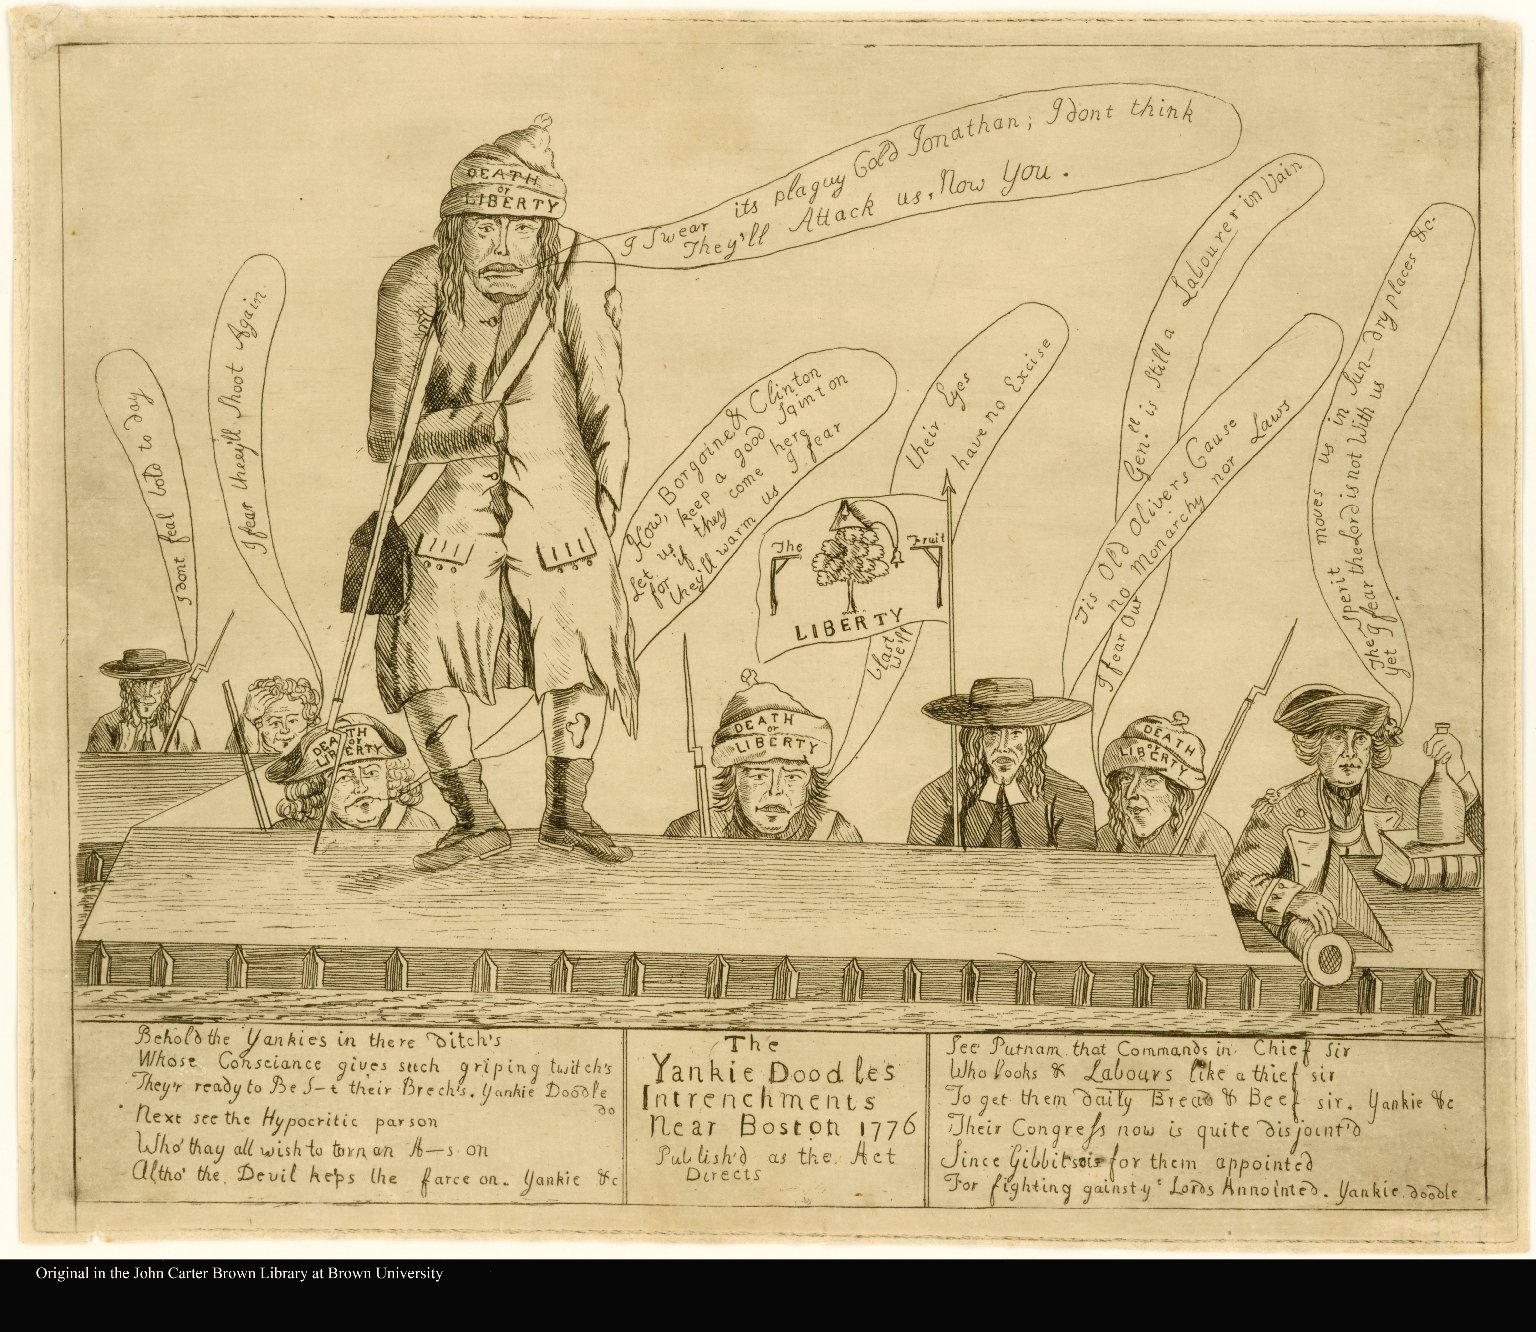 The Yankie Doodles Intrenchments Near Boston 1776